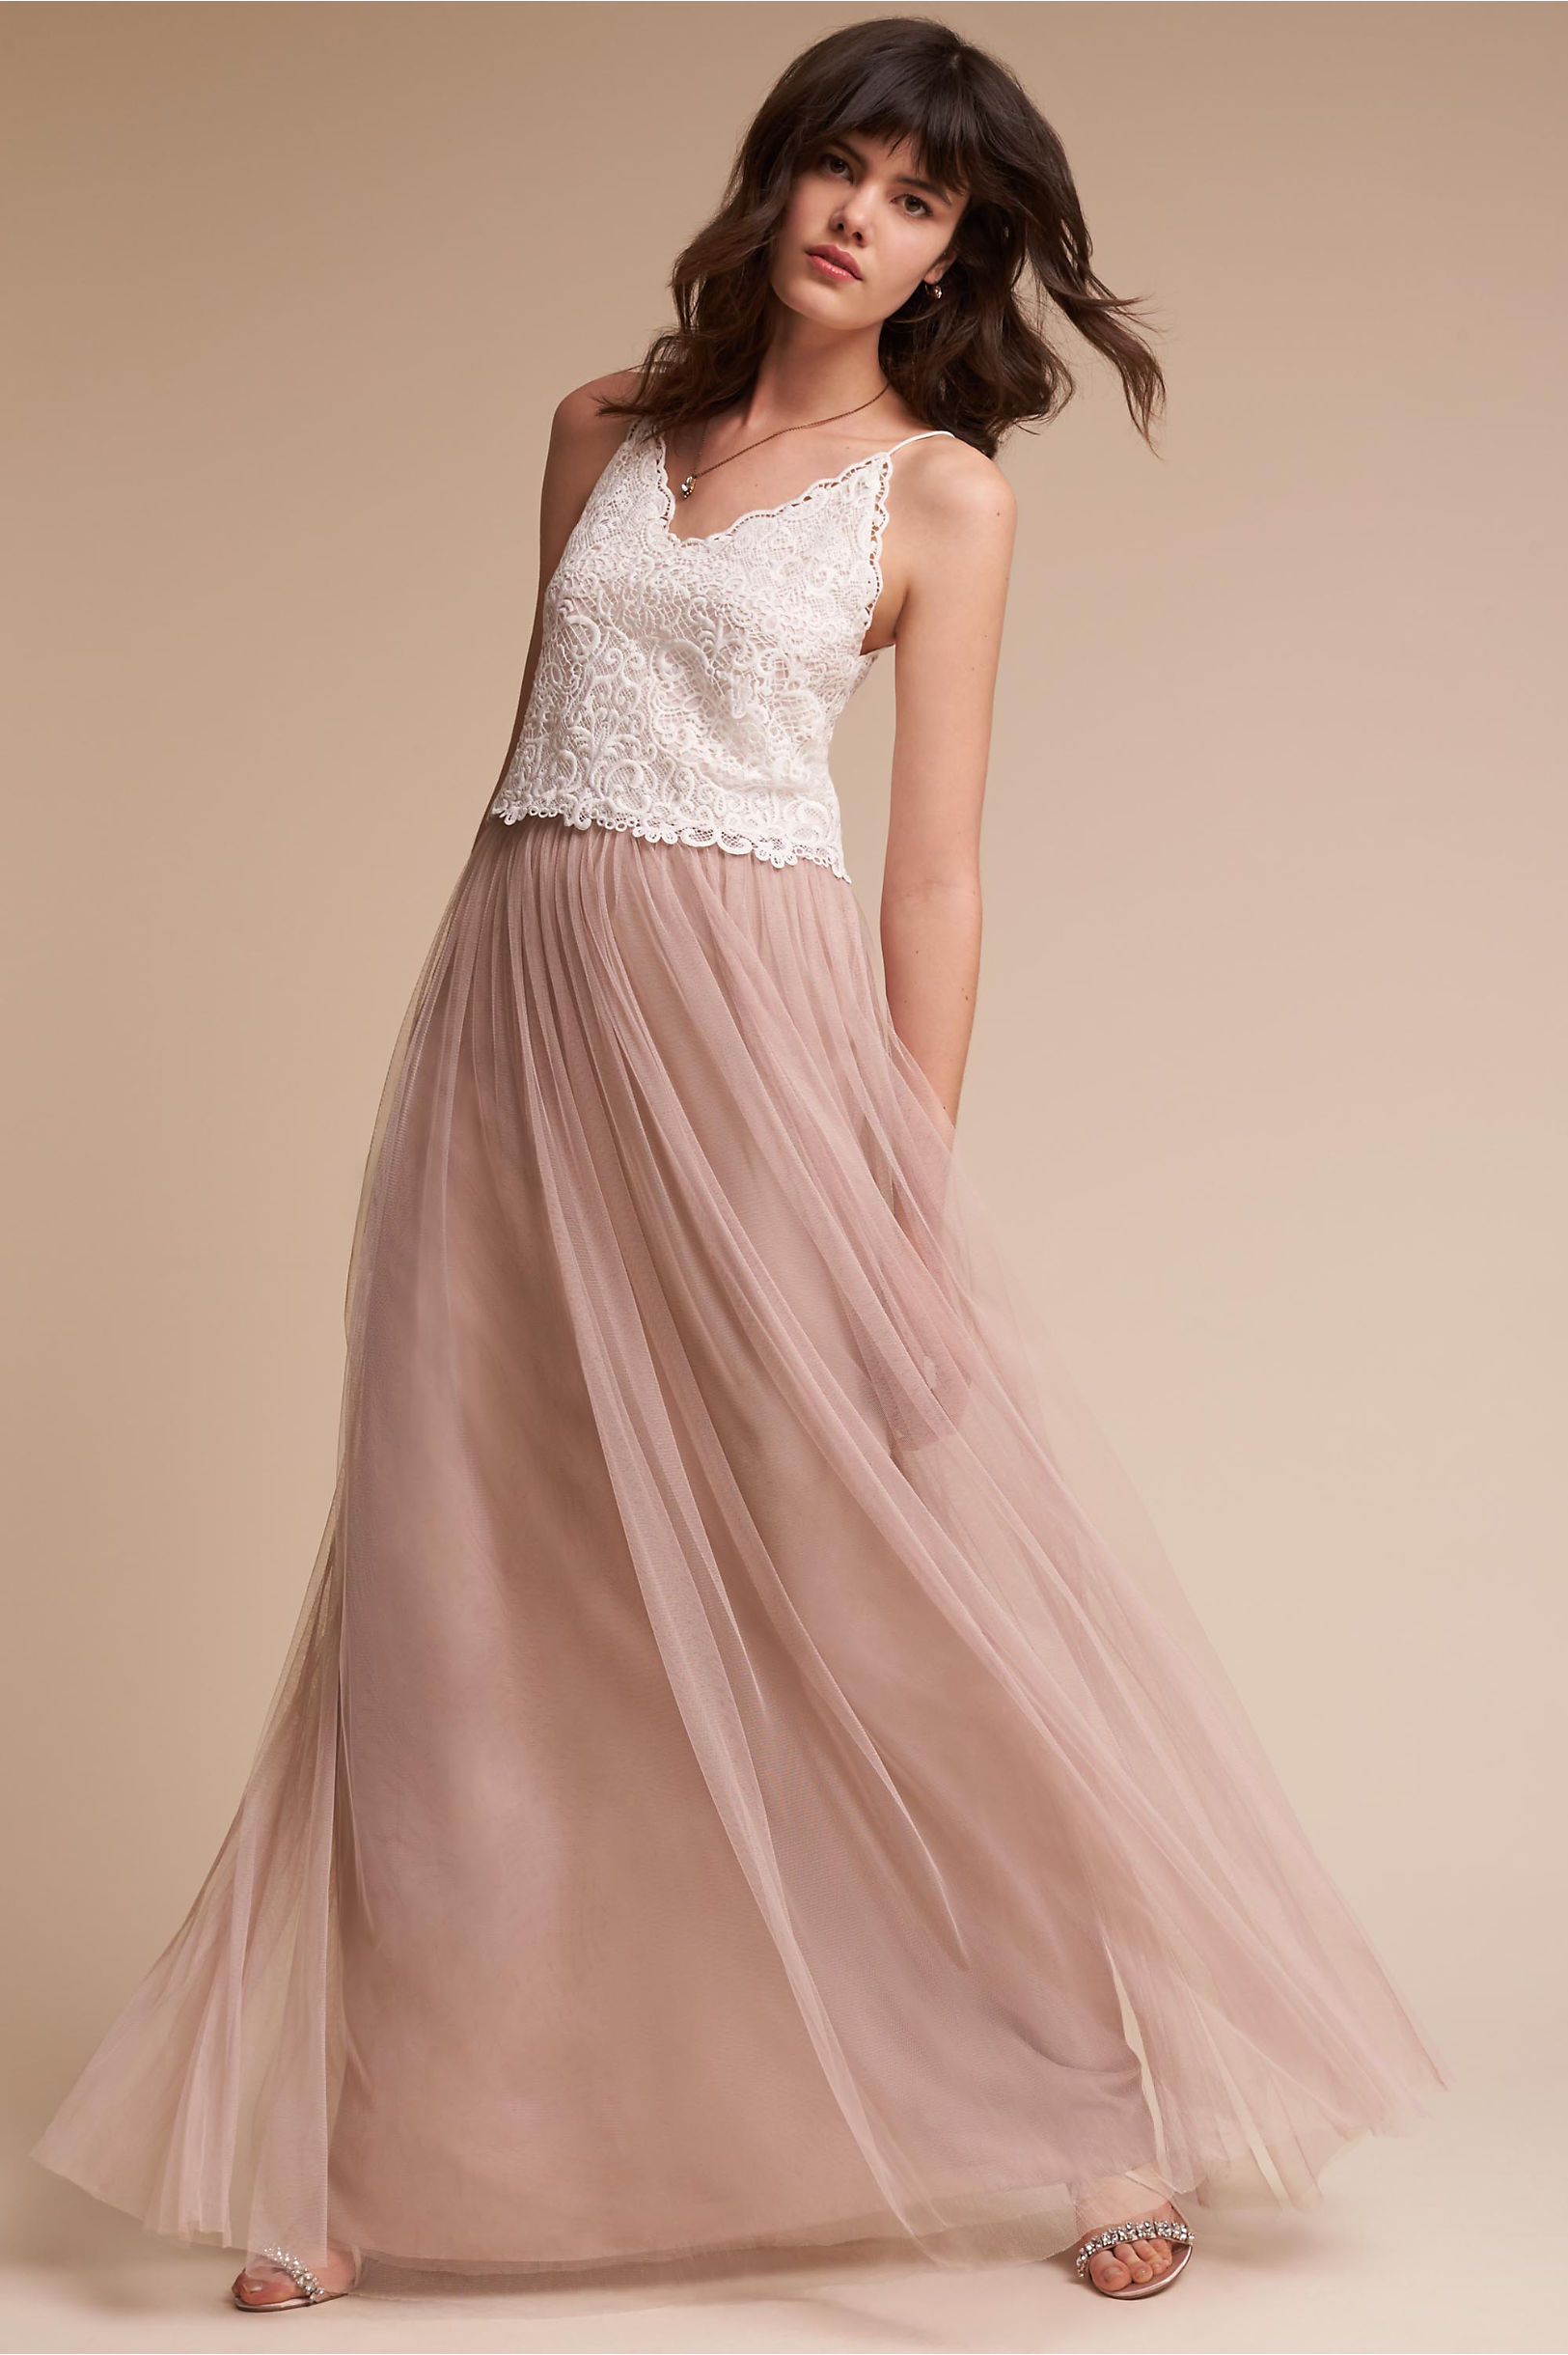 2a0ceea88f Nina Top & Louise Tulle Skirt in Bridesmaids & Bridal Party | BHLDN